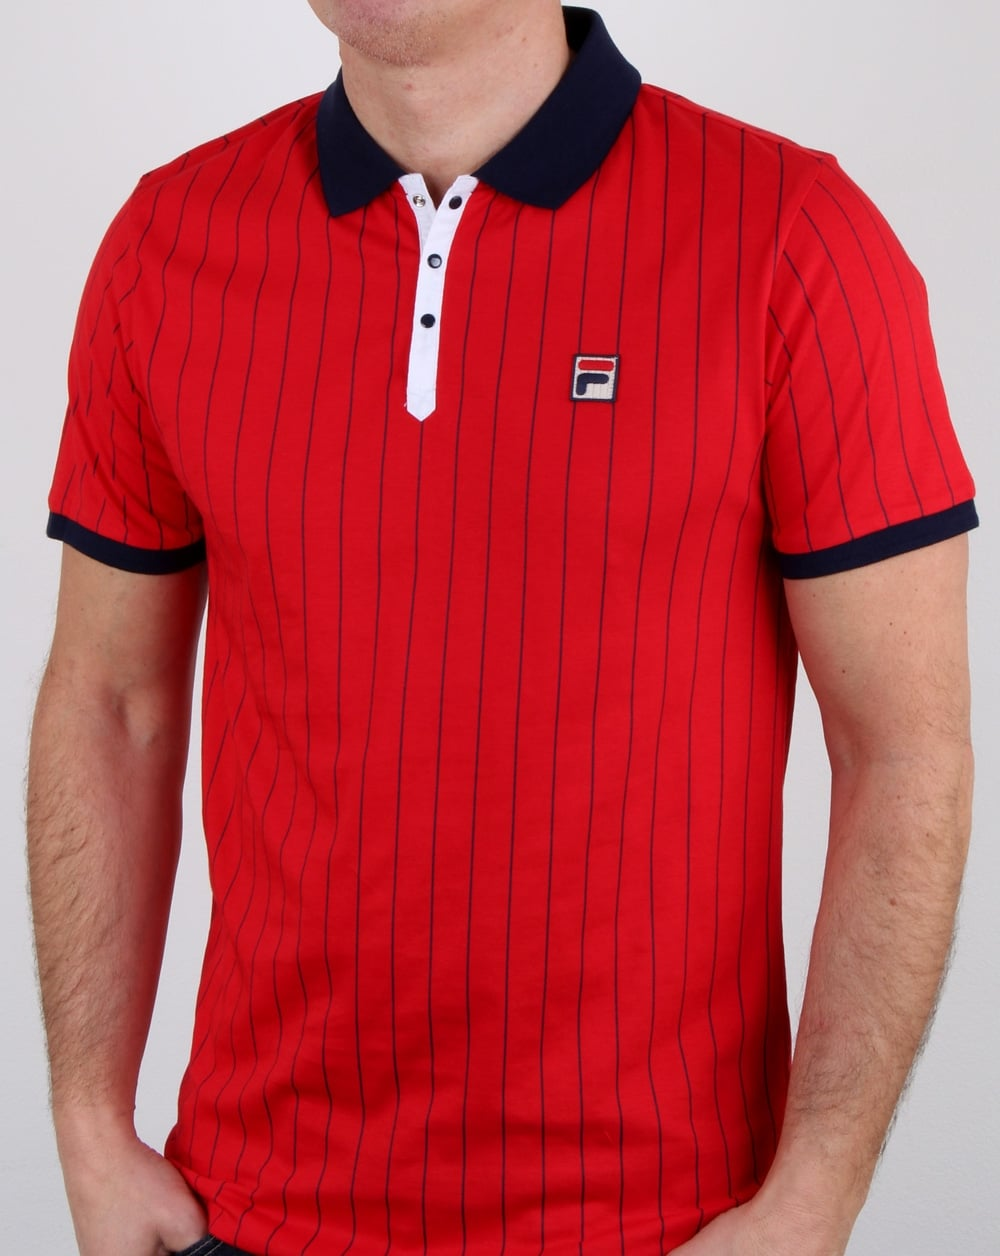 a94e15c6 Fila Vintage Bb1 Polo Shirt Red,Mens,Polo,Stripe,Bjorn Borg,Wimbledon